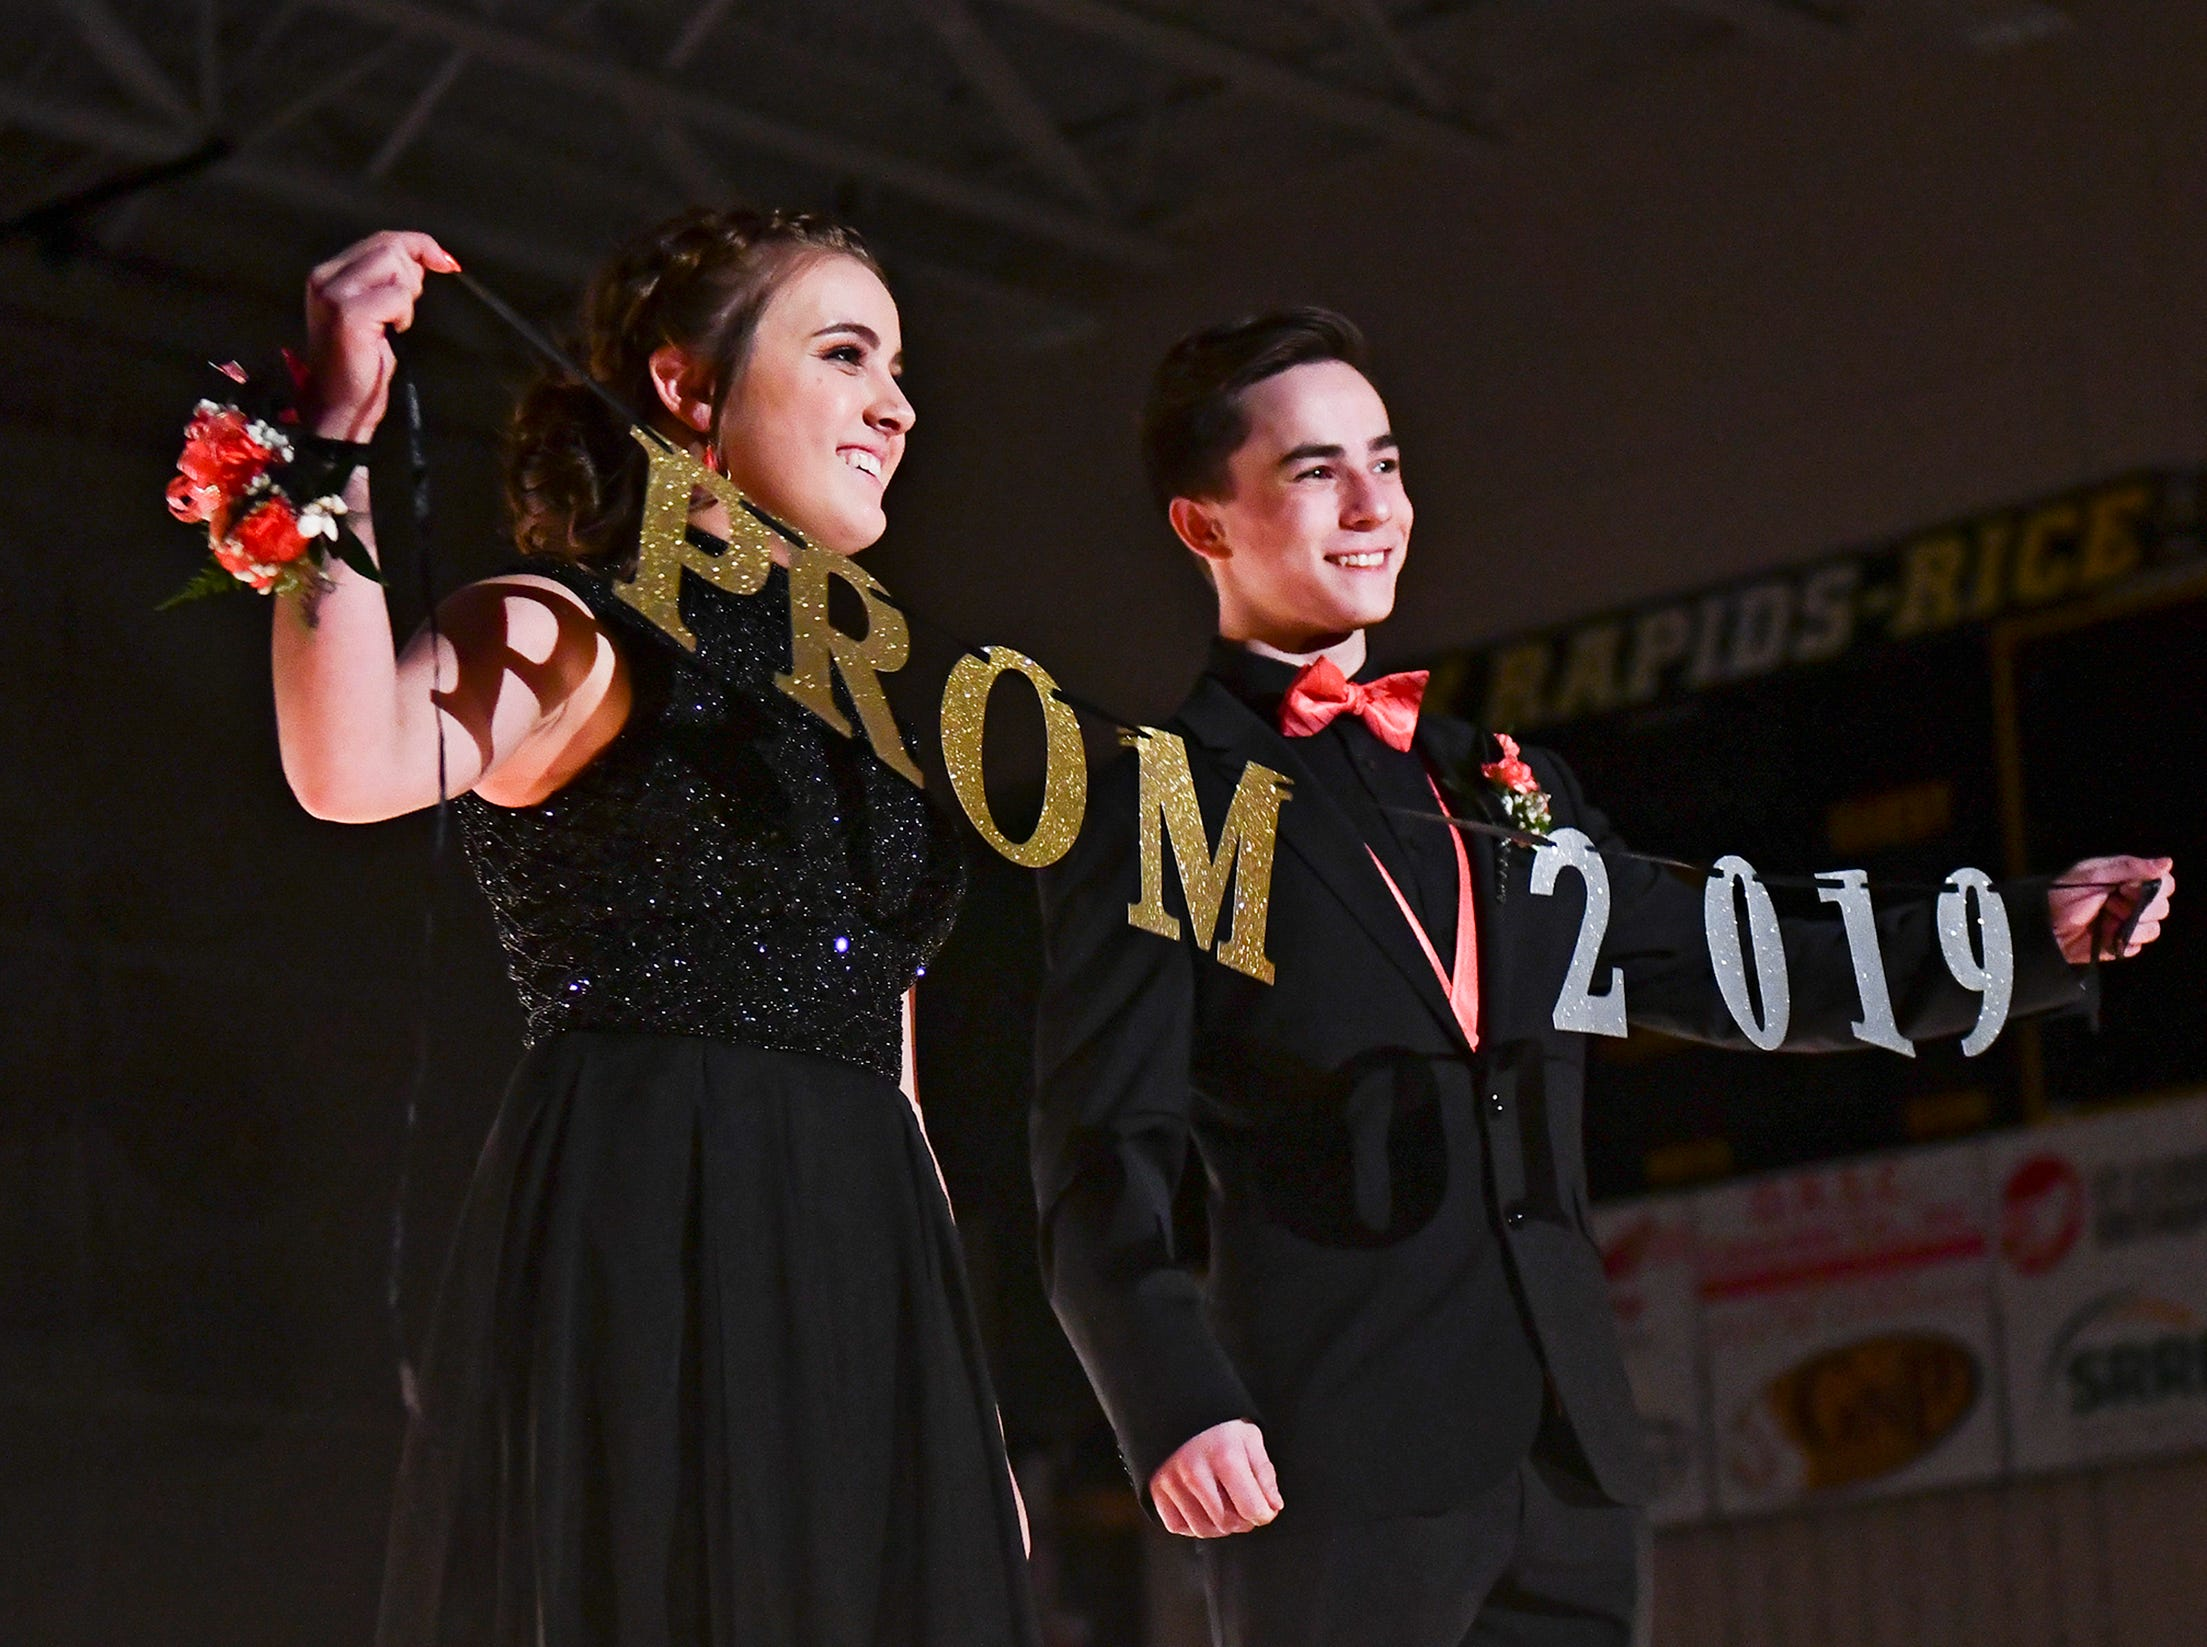 A couple holds a sign during their turn at prom grand march Saturday, May 11, at Sauk Rapids-Rice High School.